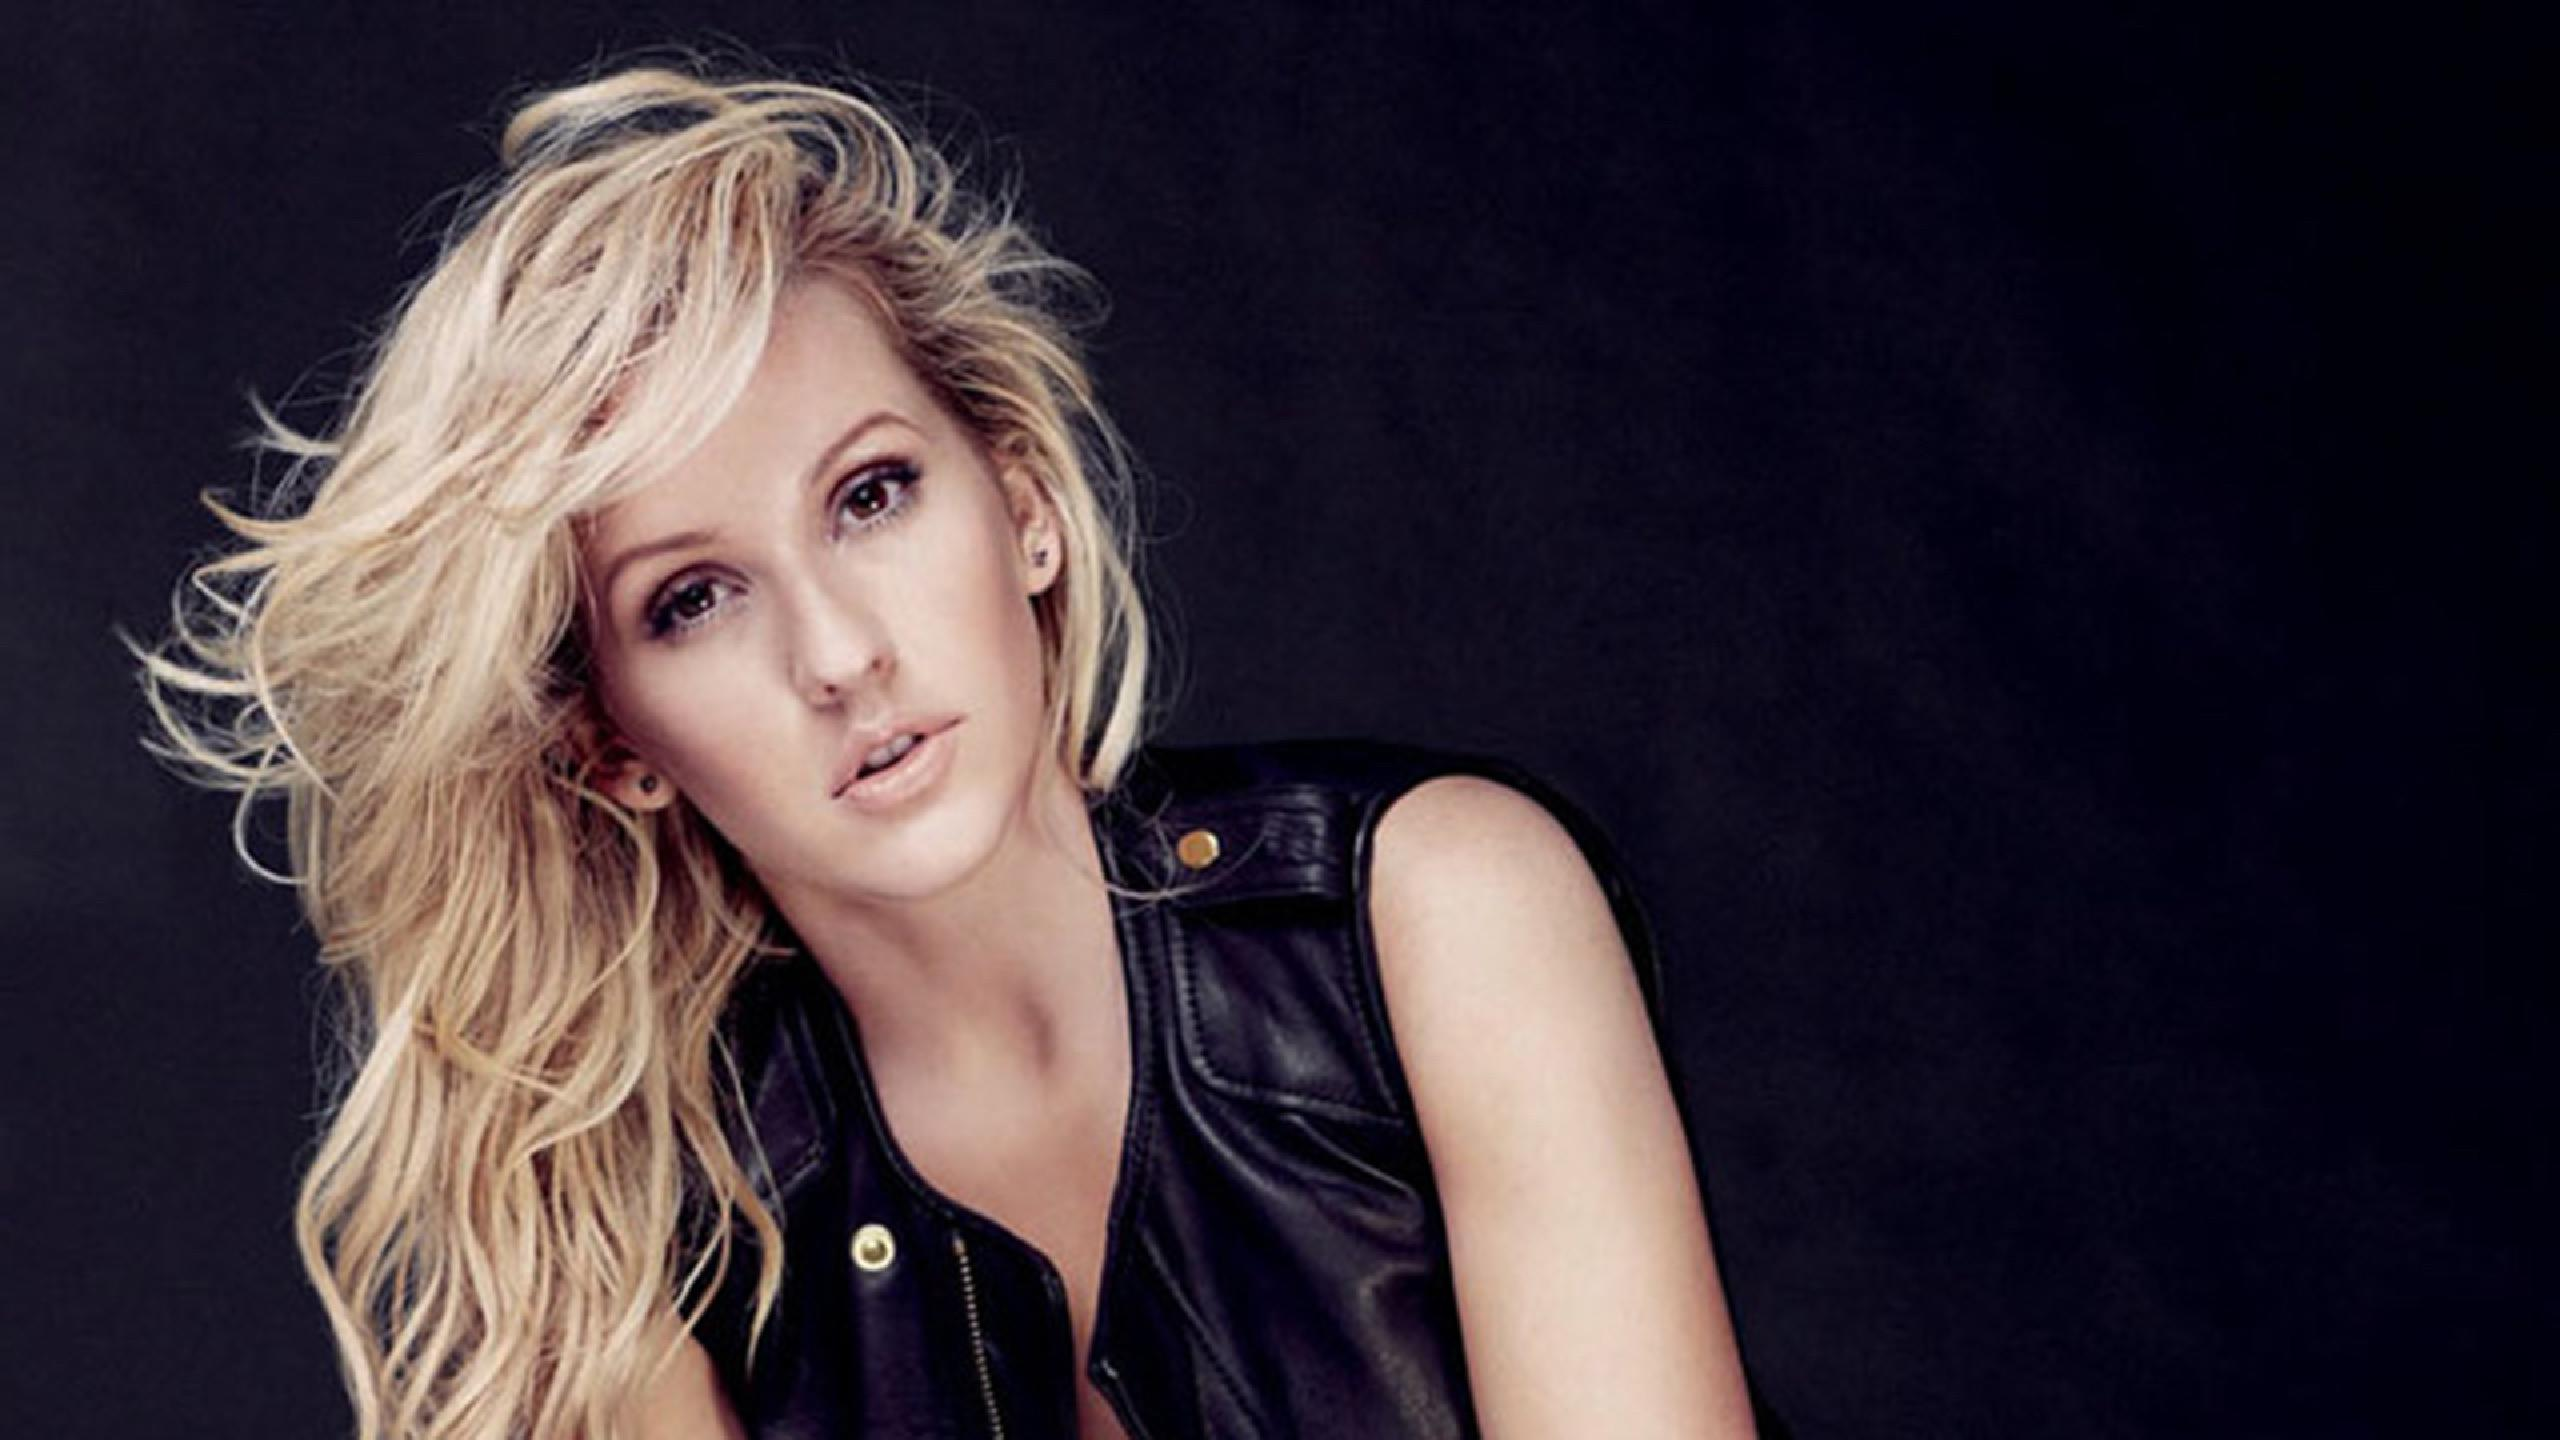 Ellie Goulding Tour 2020 Ellie Goulding tour dates 2019 2020. Ellie Goulding tickets and